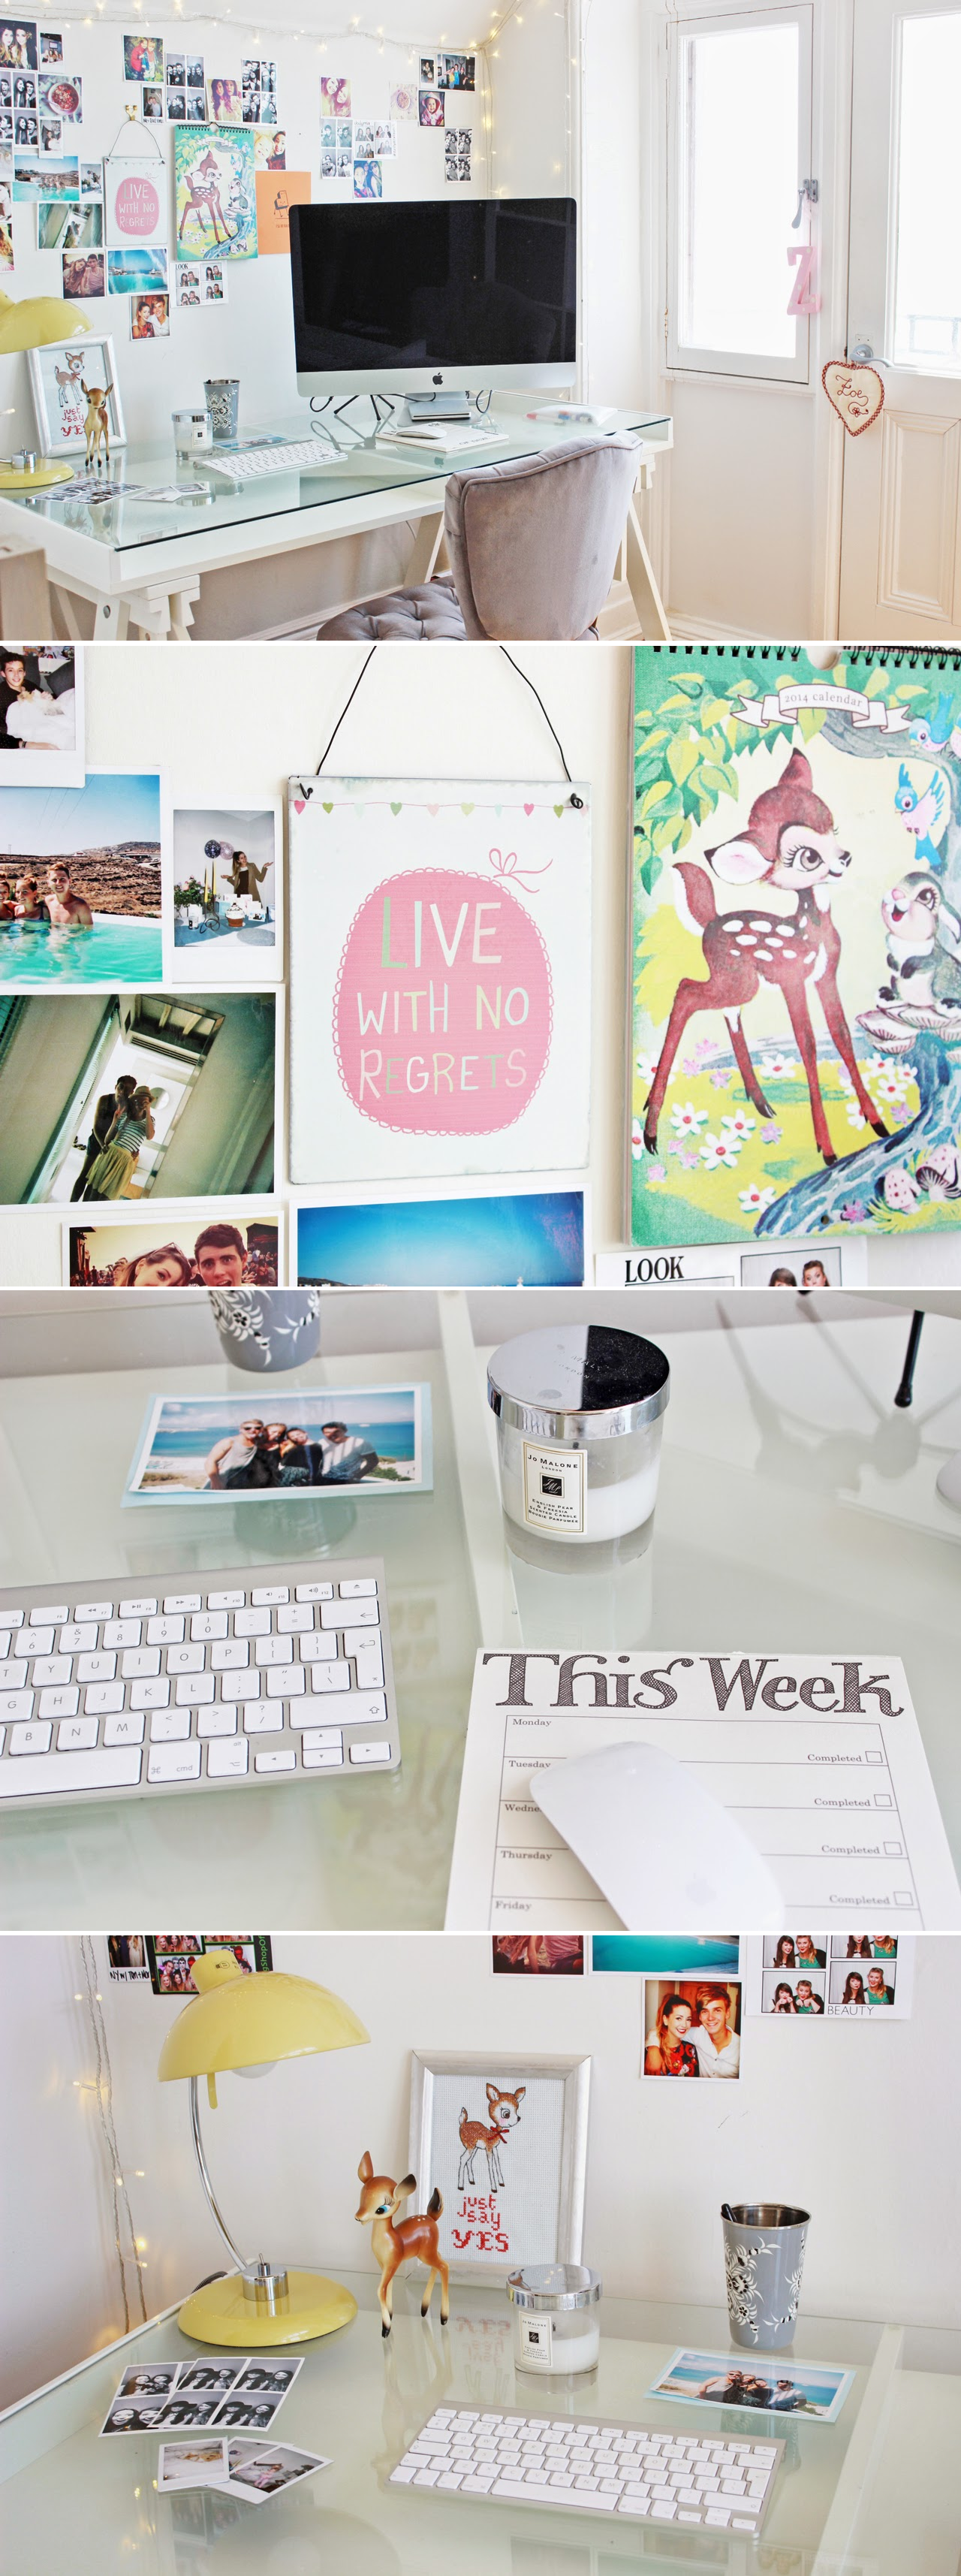 My office space zoella office spaces and spaces for Room decor zoella